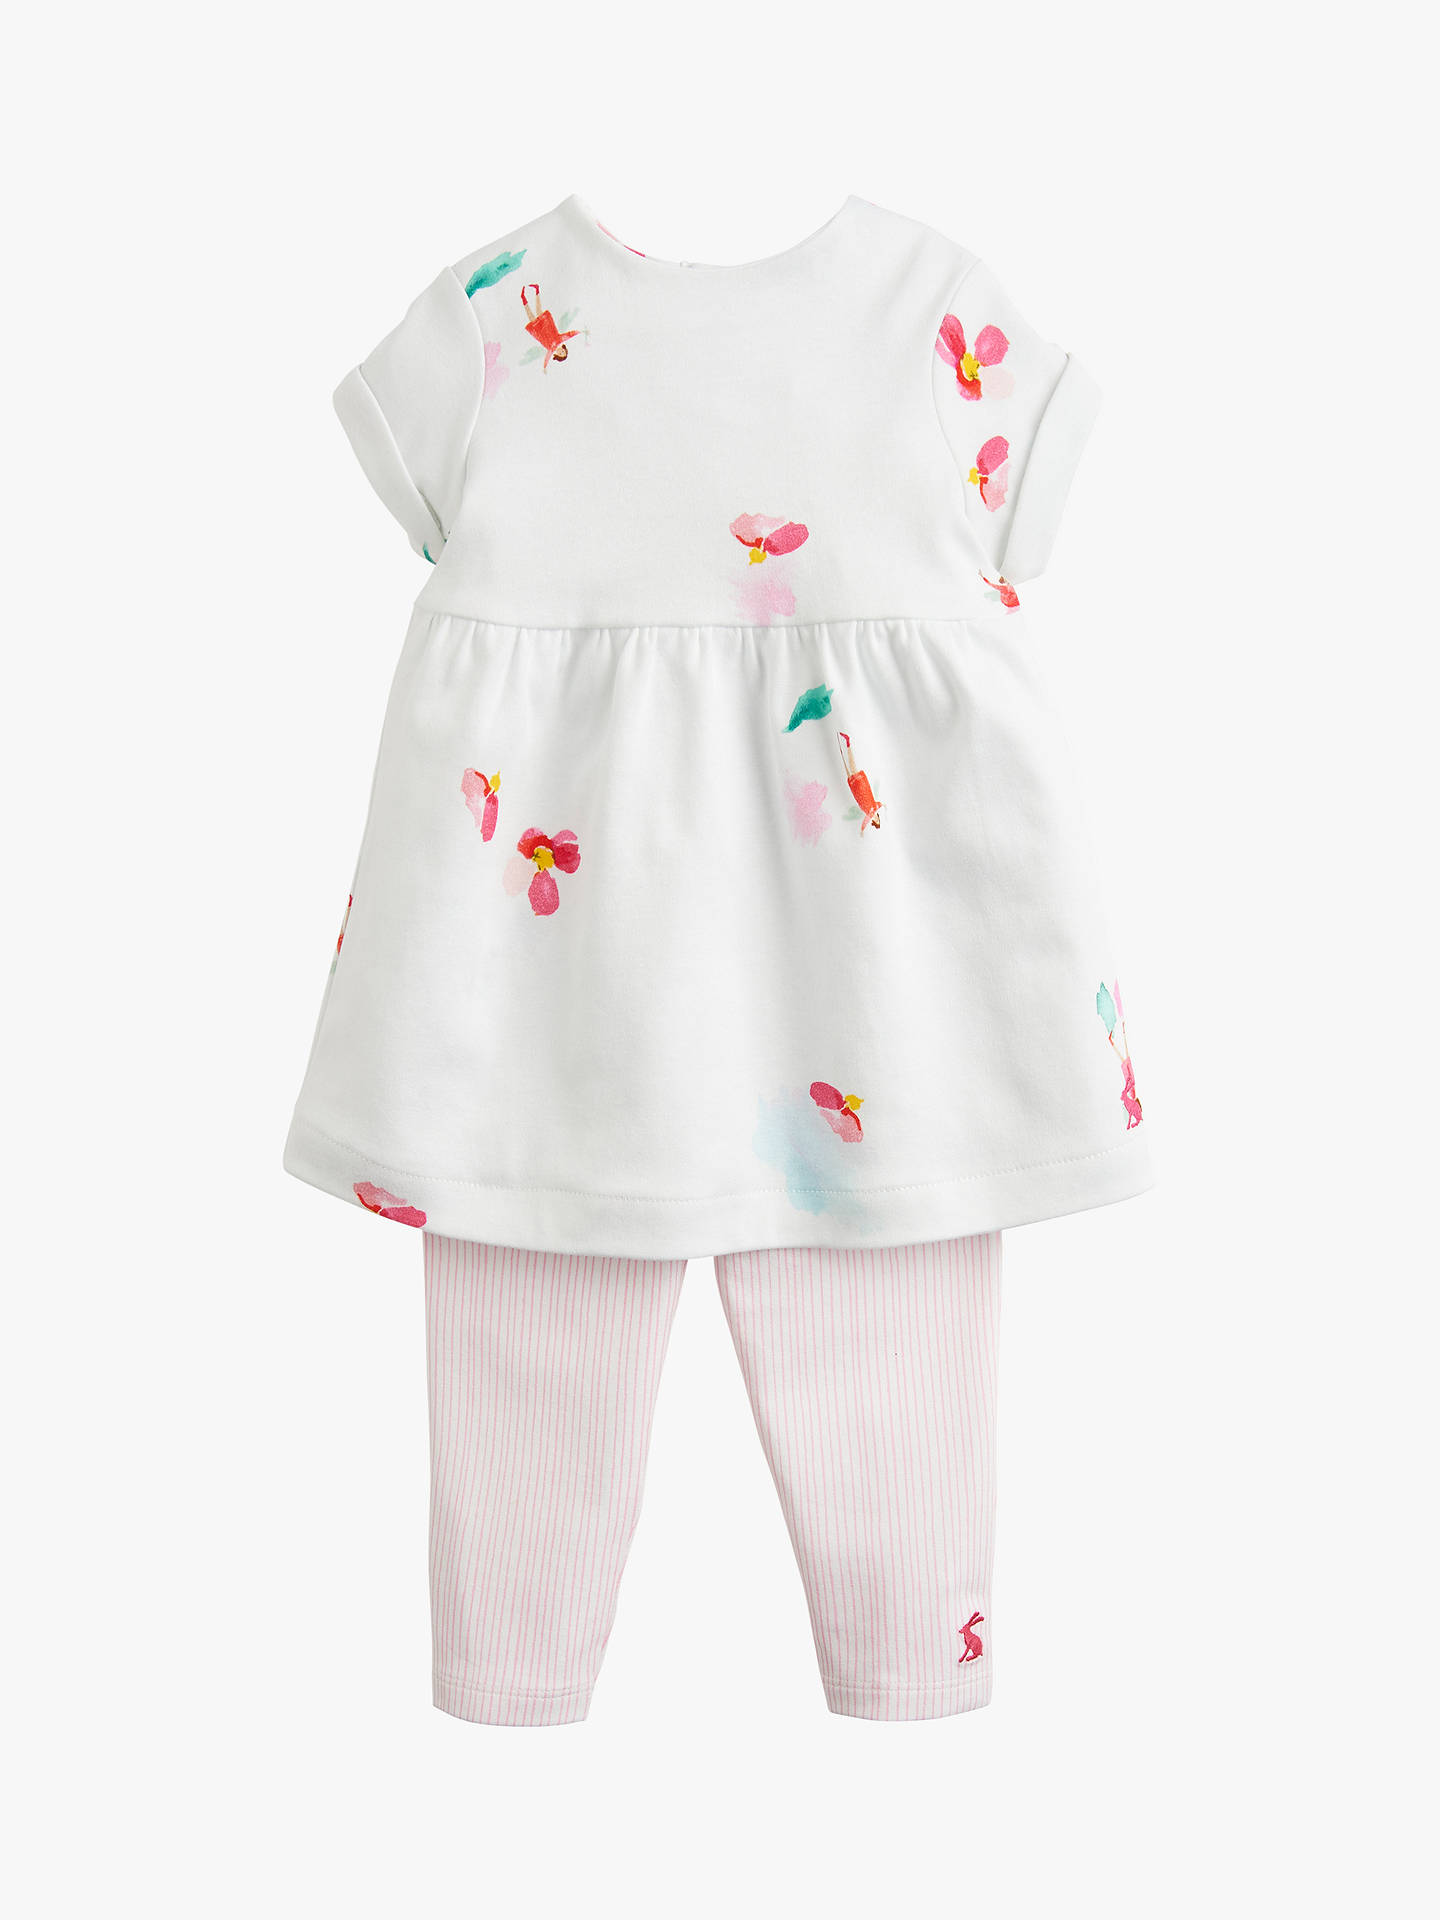 c74900f26 Buy Baby Joule Seren Floral Dress and Leggings Set, White/Pink, 0- ...